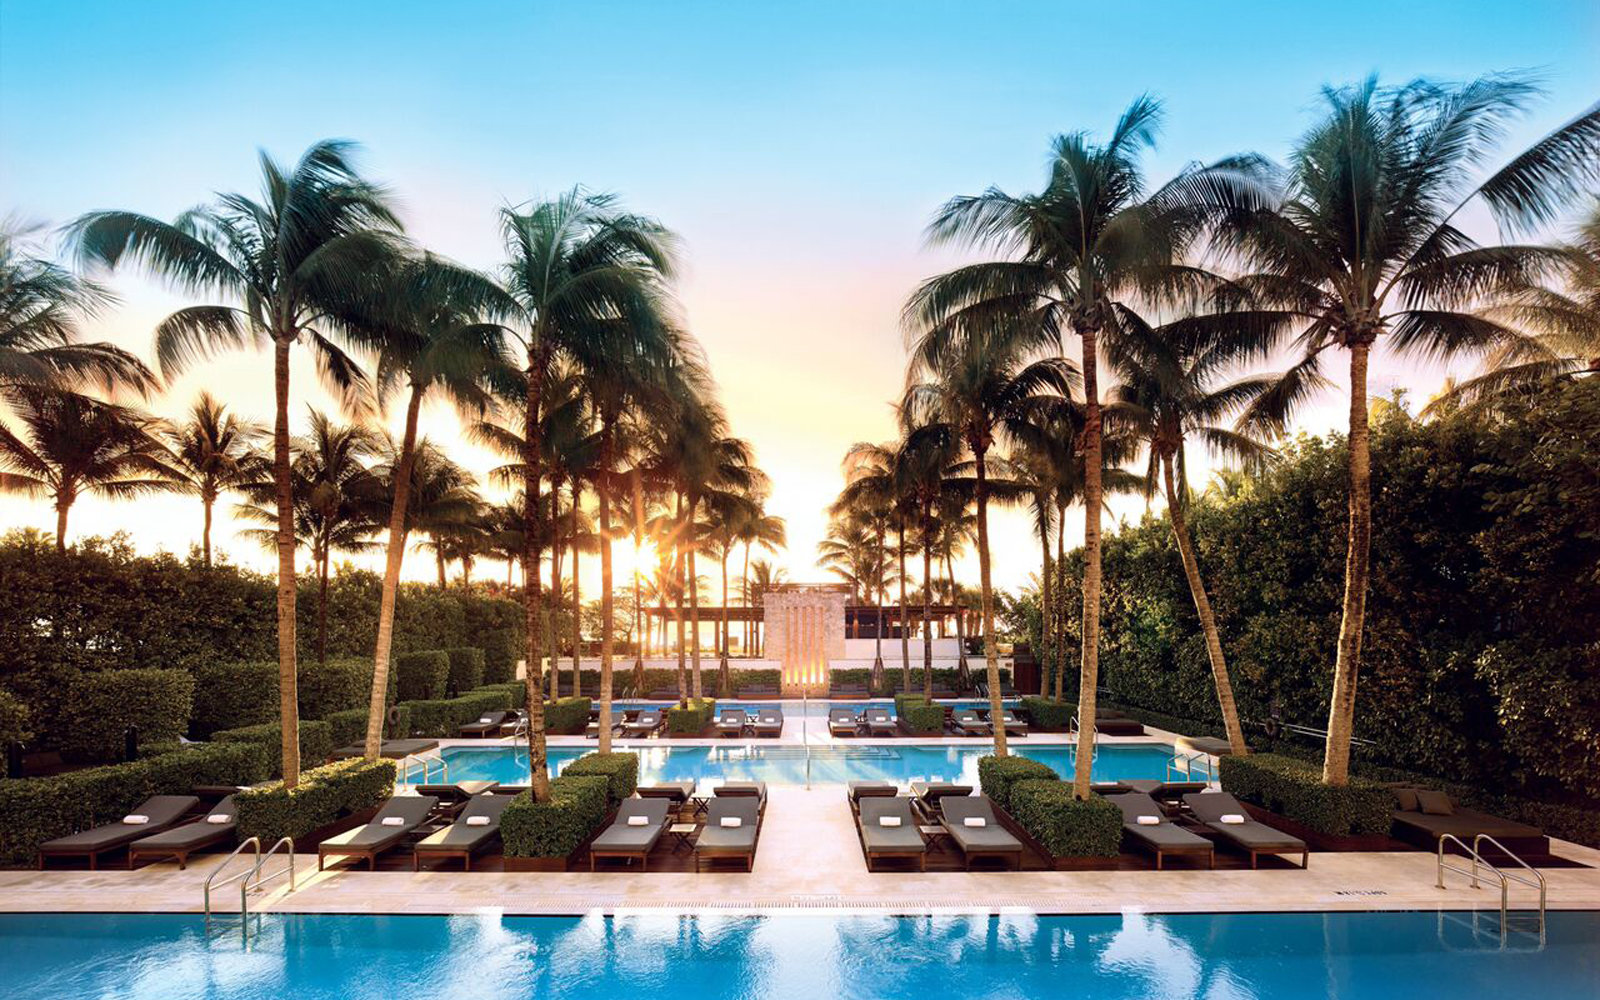 No. 10: The Setai, Miami Beach